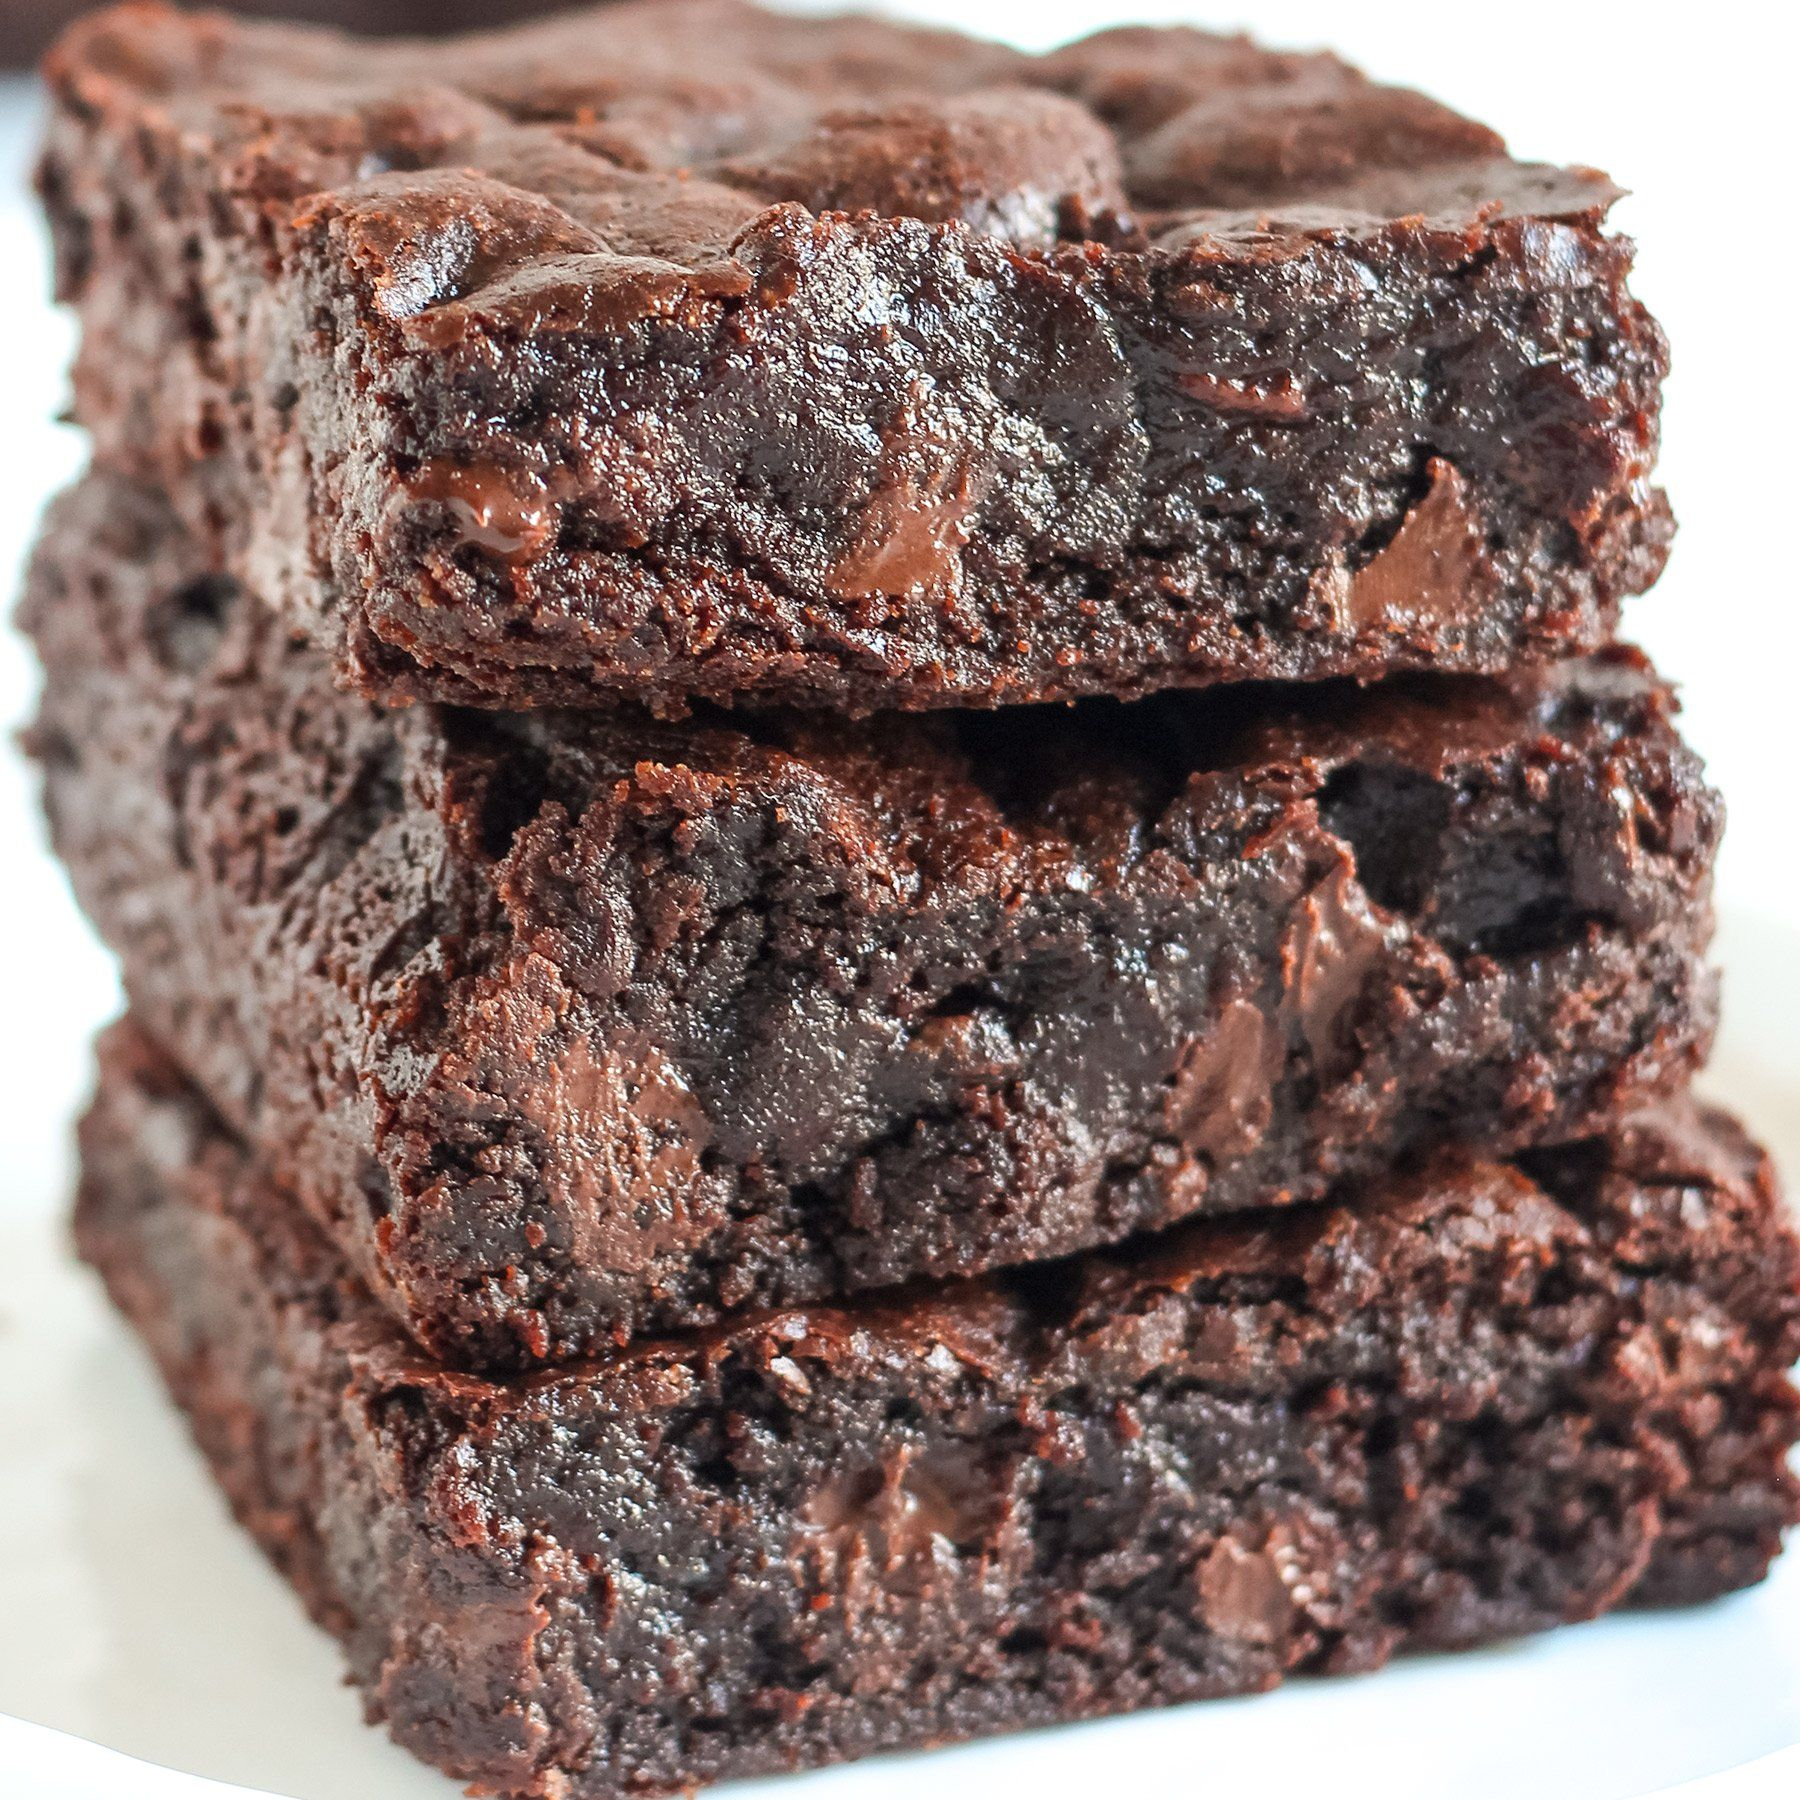 The Best Chewy Brownies Are Just As Chewy As The Boxed Brownies But Packed With Way More Chocolate Flavor One Bowl Re Chewy Brownies Recipe Best Brownie Recipe